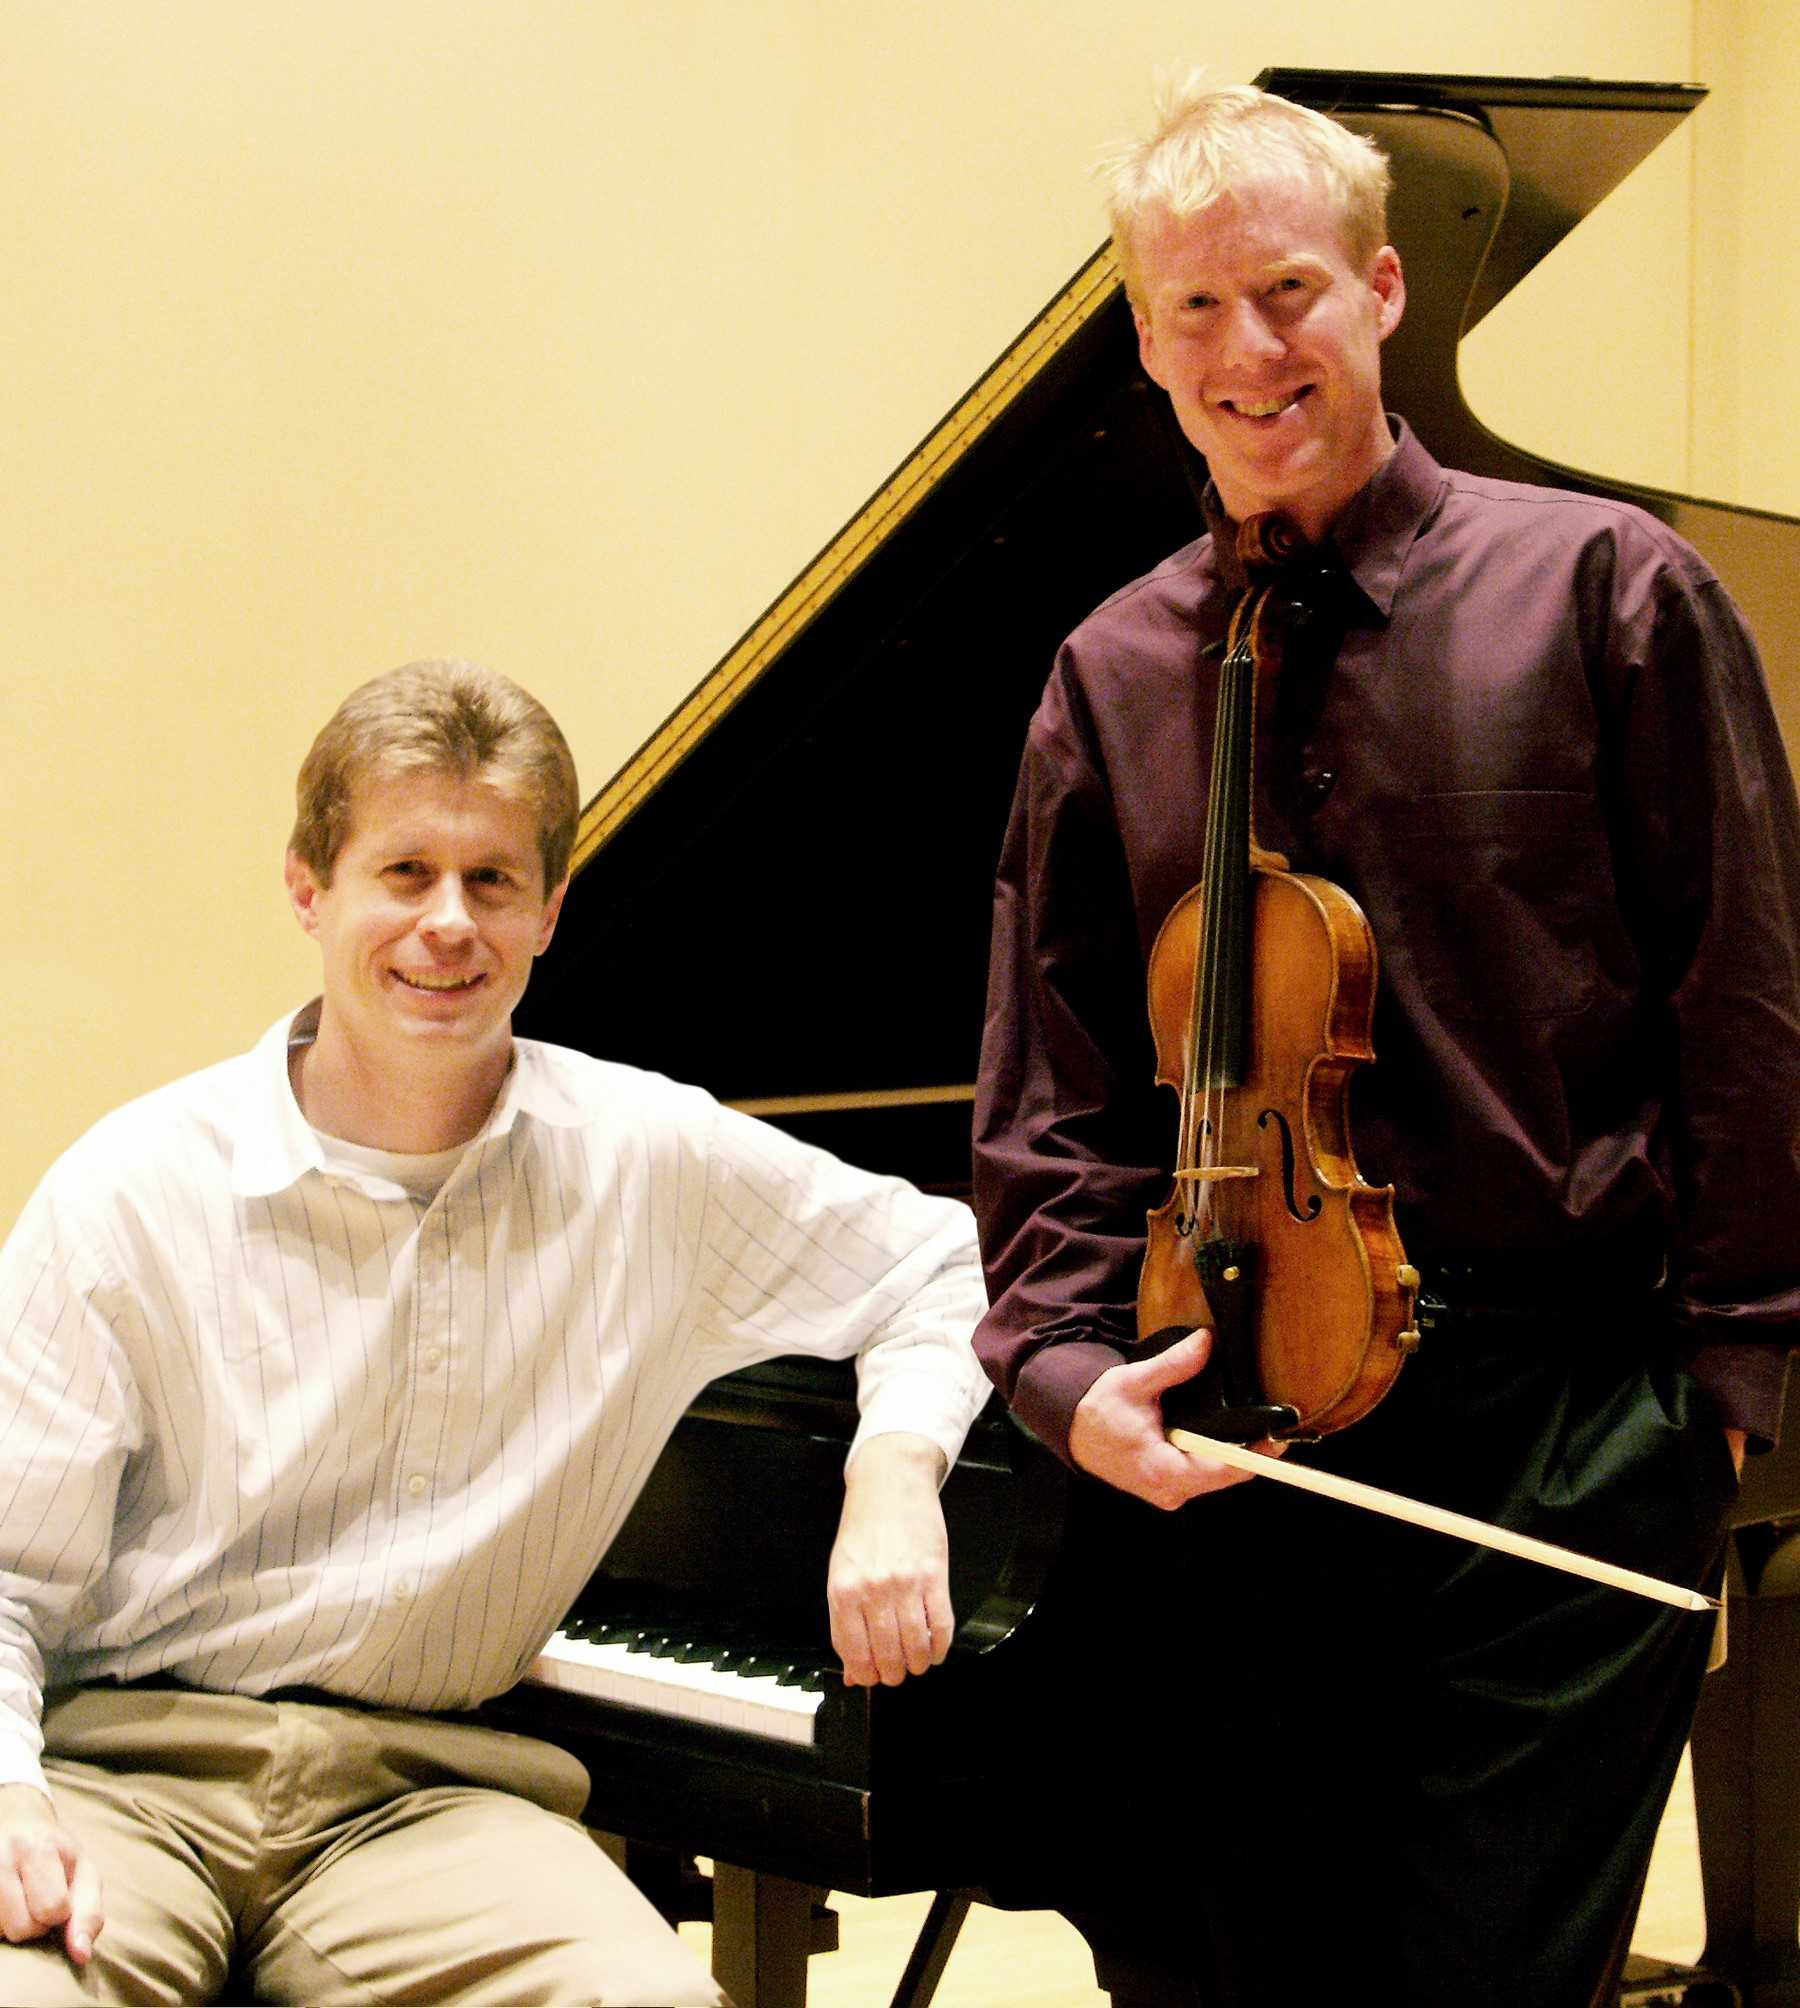 Nathan Hess, D.M.A., left, and Ken Johnston, right, are performing in the Erie Philharmonic's special event on Oct. 10.